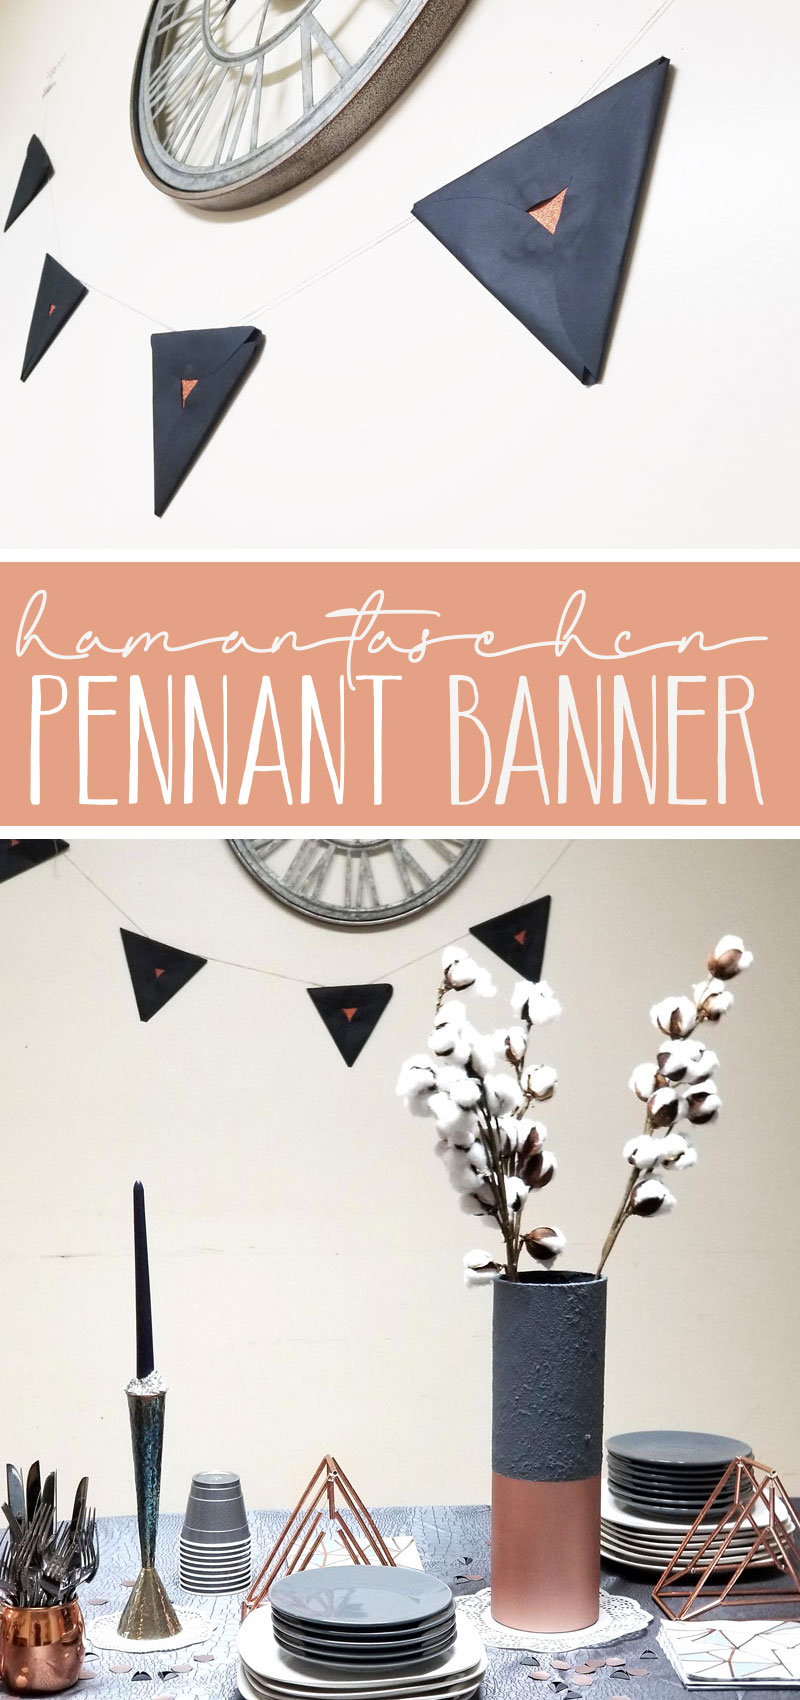 Click for a super cool DIY purim decoration idea! This hamantaschen pennant banner is an easy Jewish paper craft that's great for kids, adults, and everyone in beteween. It's easy DIY Purim decor that you'll love to have around.